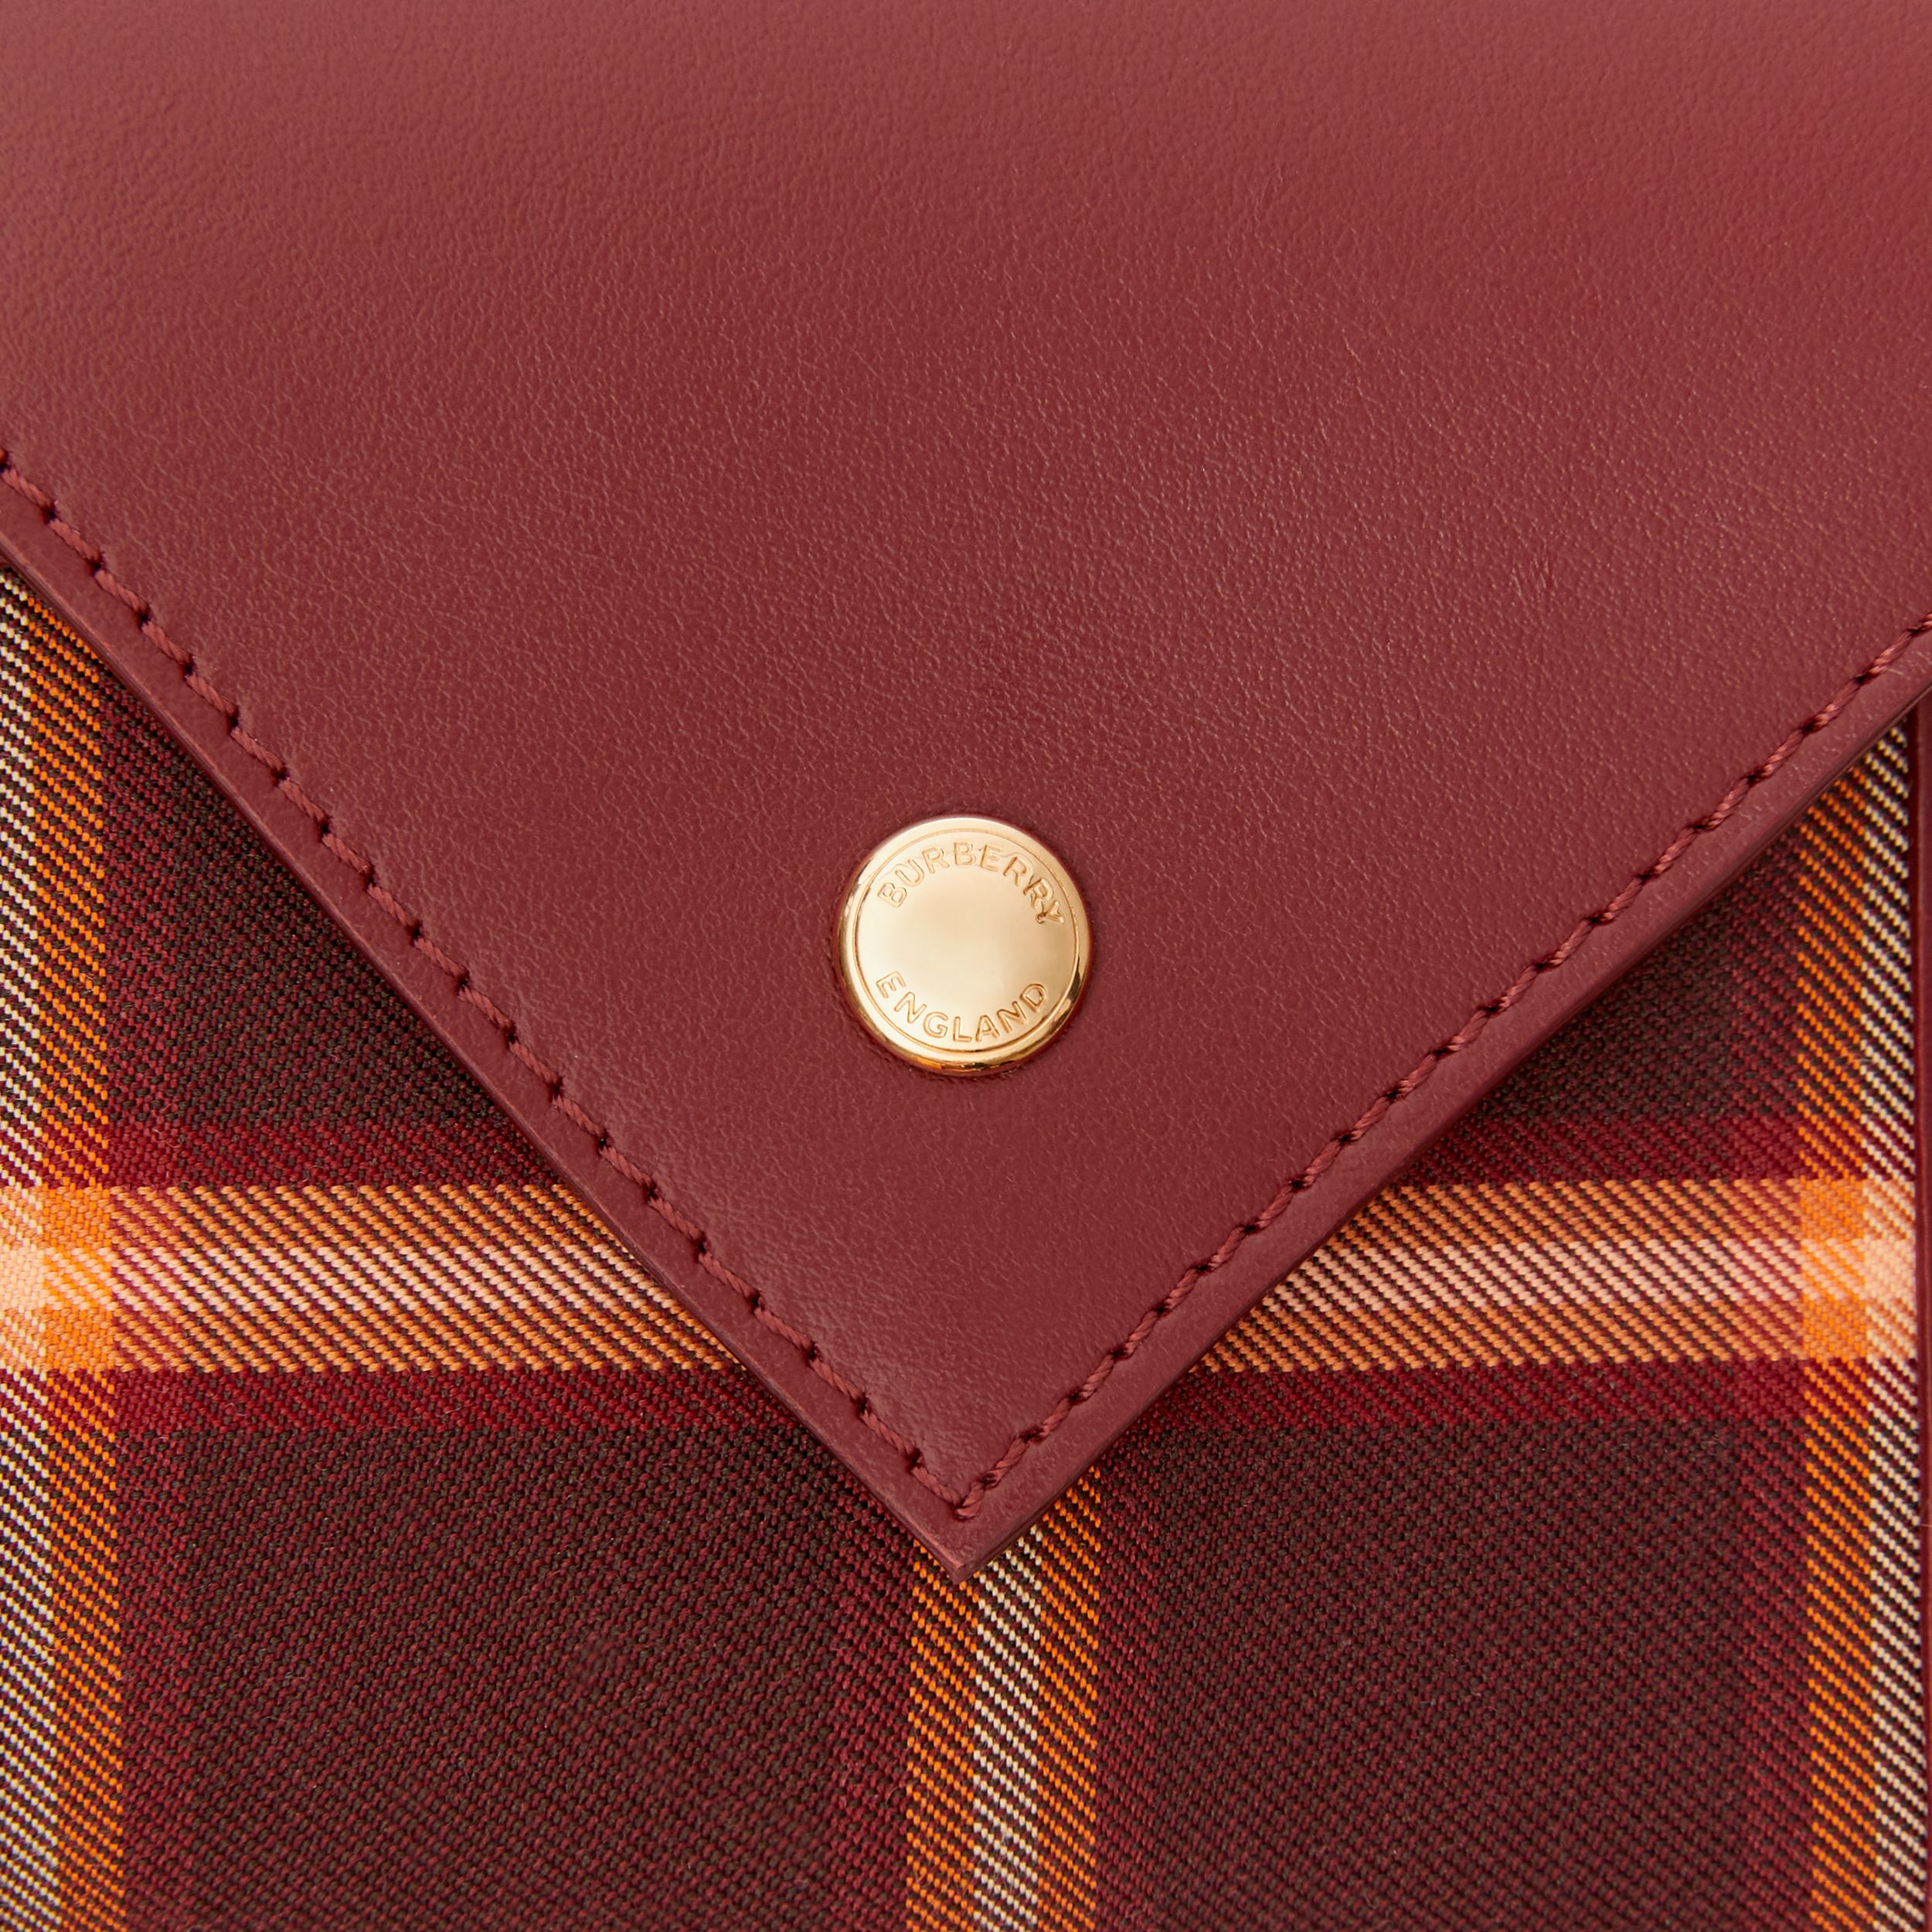 Tartan Technical Cotton and Leather Folding Wallet in Burgundy - Women | Burberry - 2